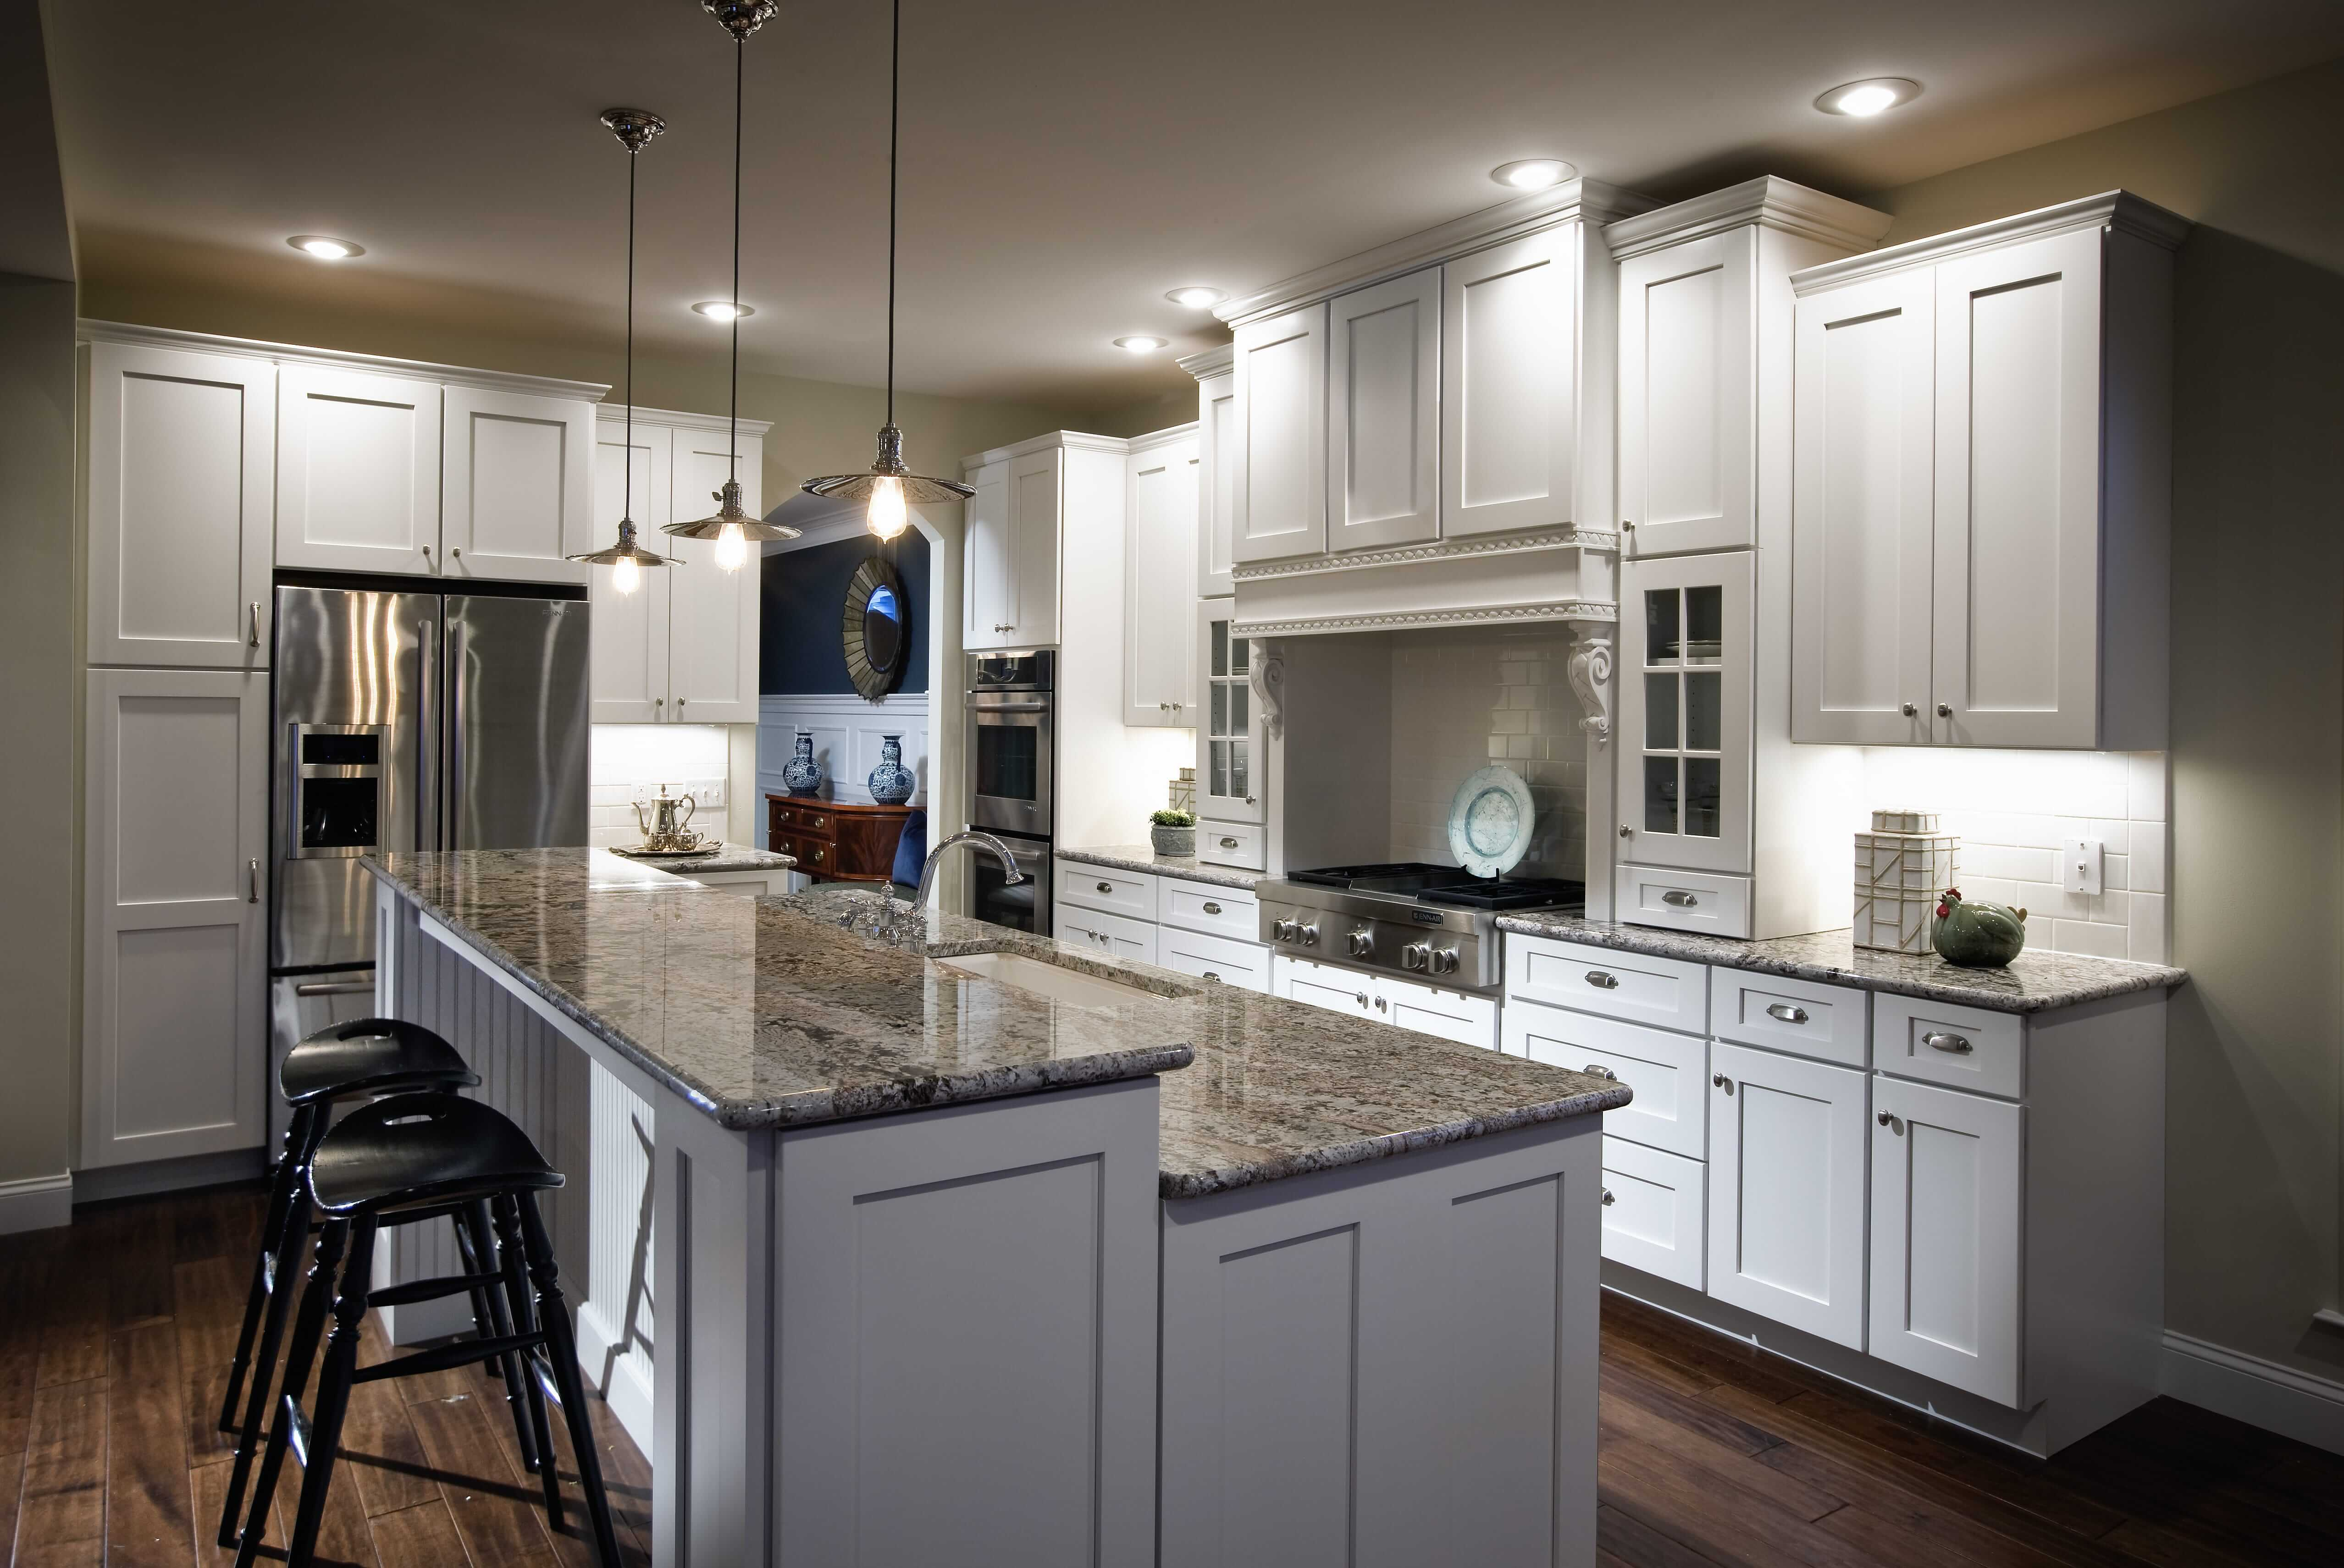 spacious kitchen island plans with seating. Kitchen Island With Bar Seating Spacious Plans N